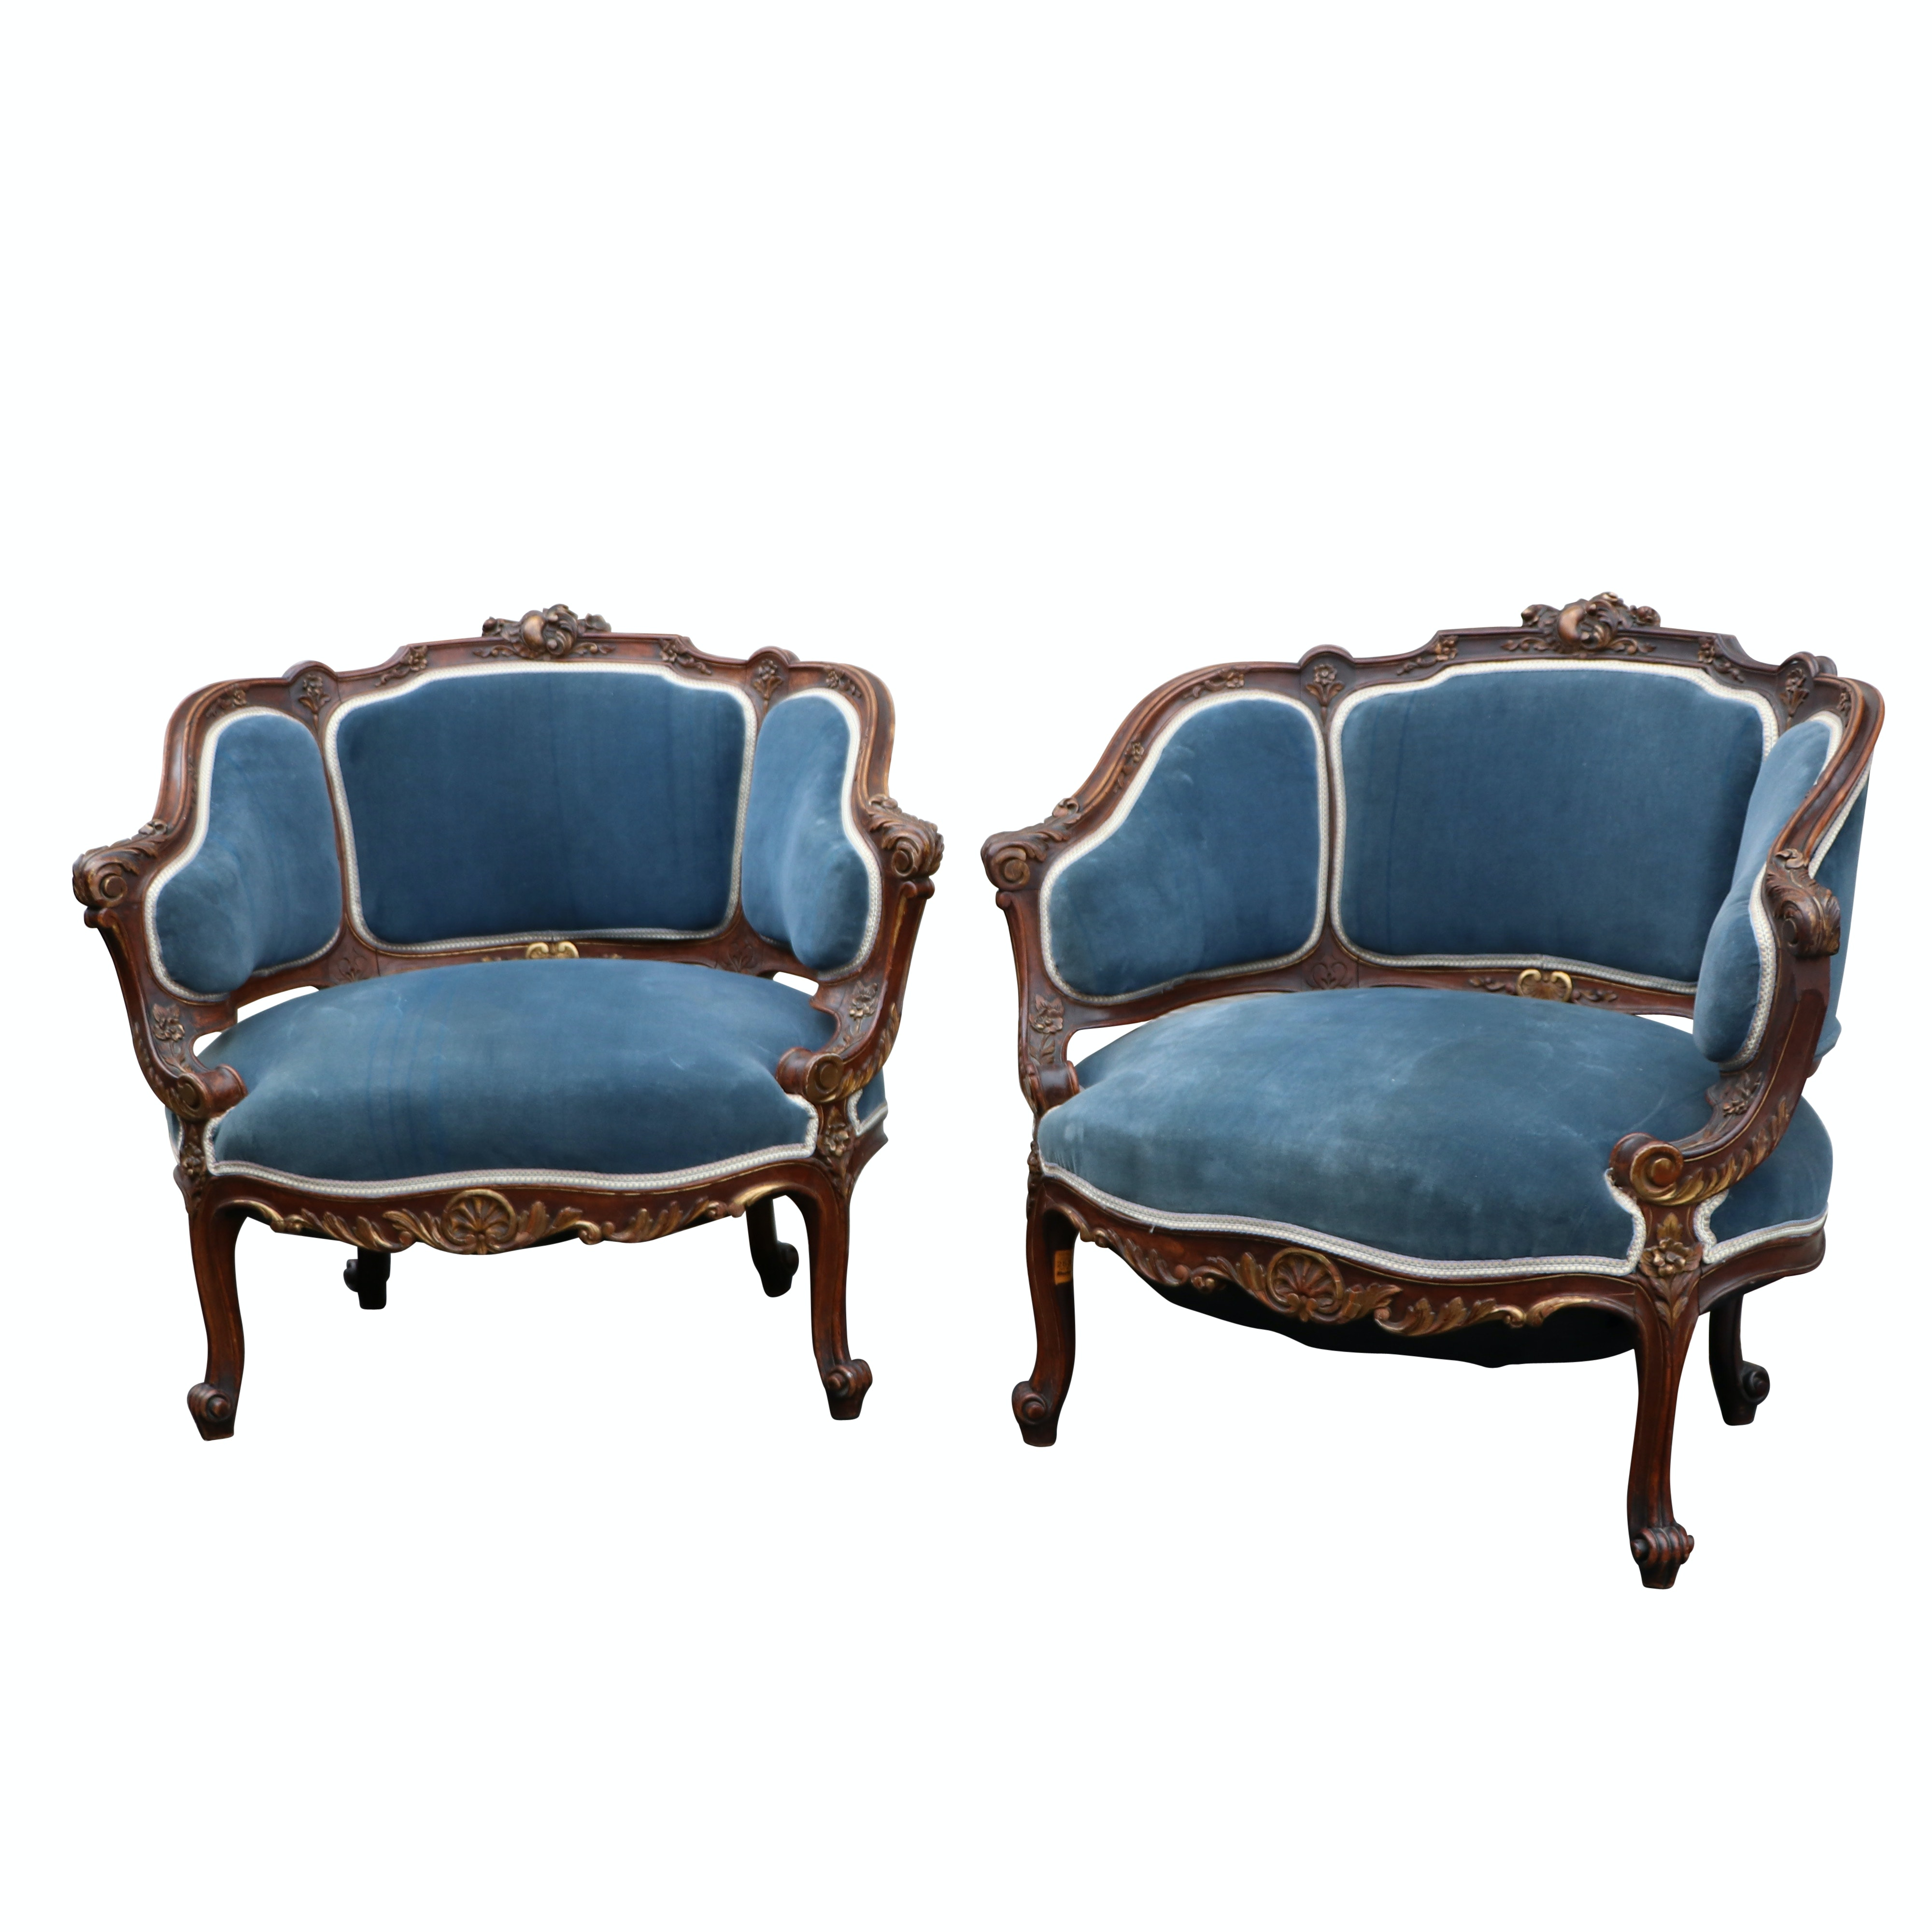 Matching Pair of Vintage French Rococo Style Armchairs